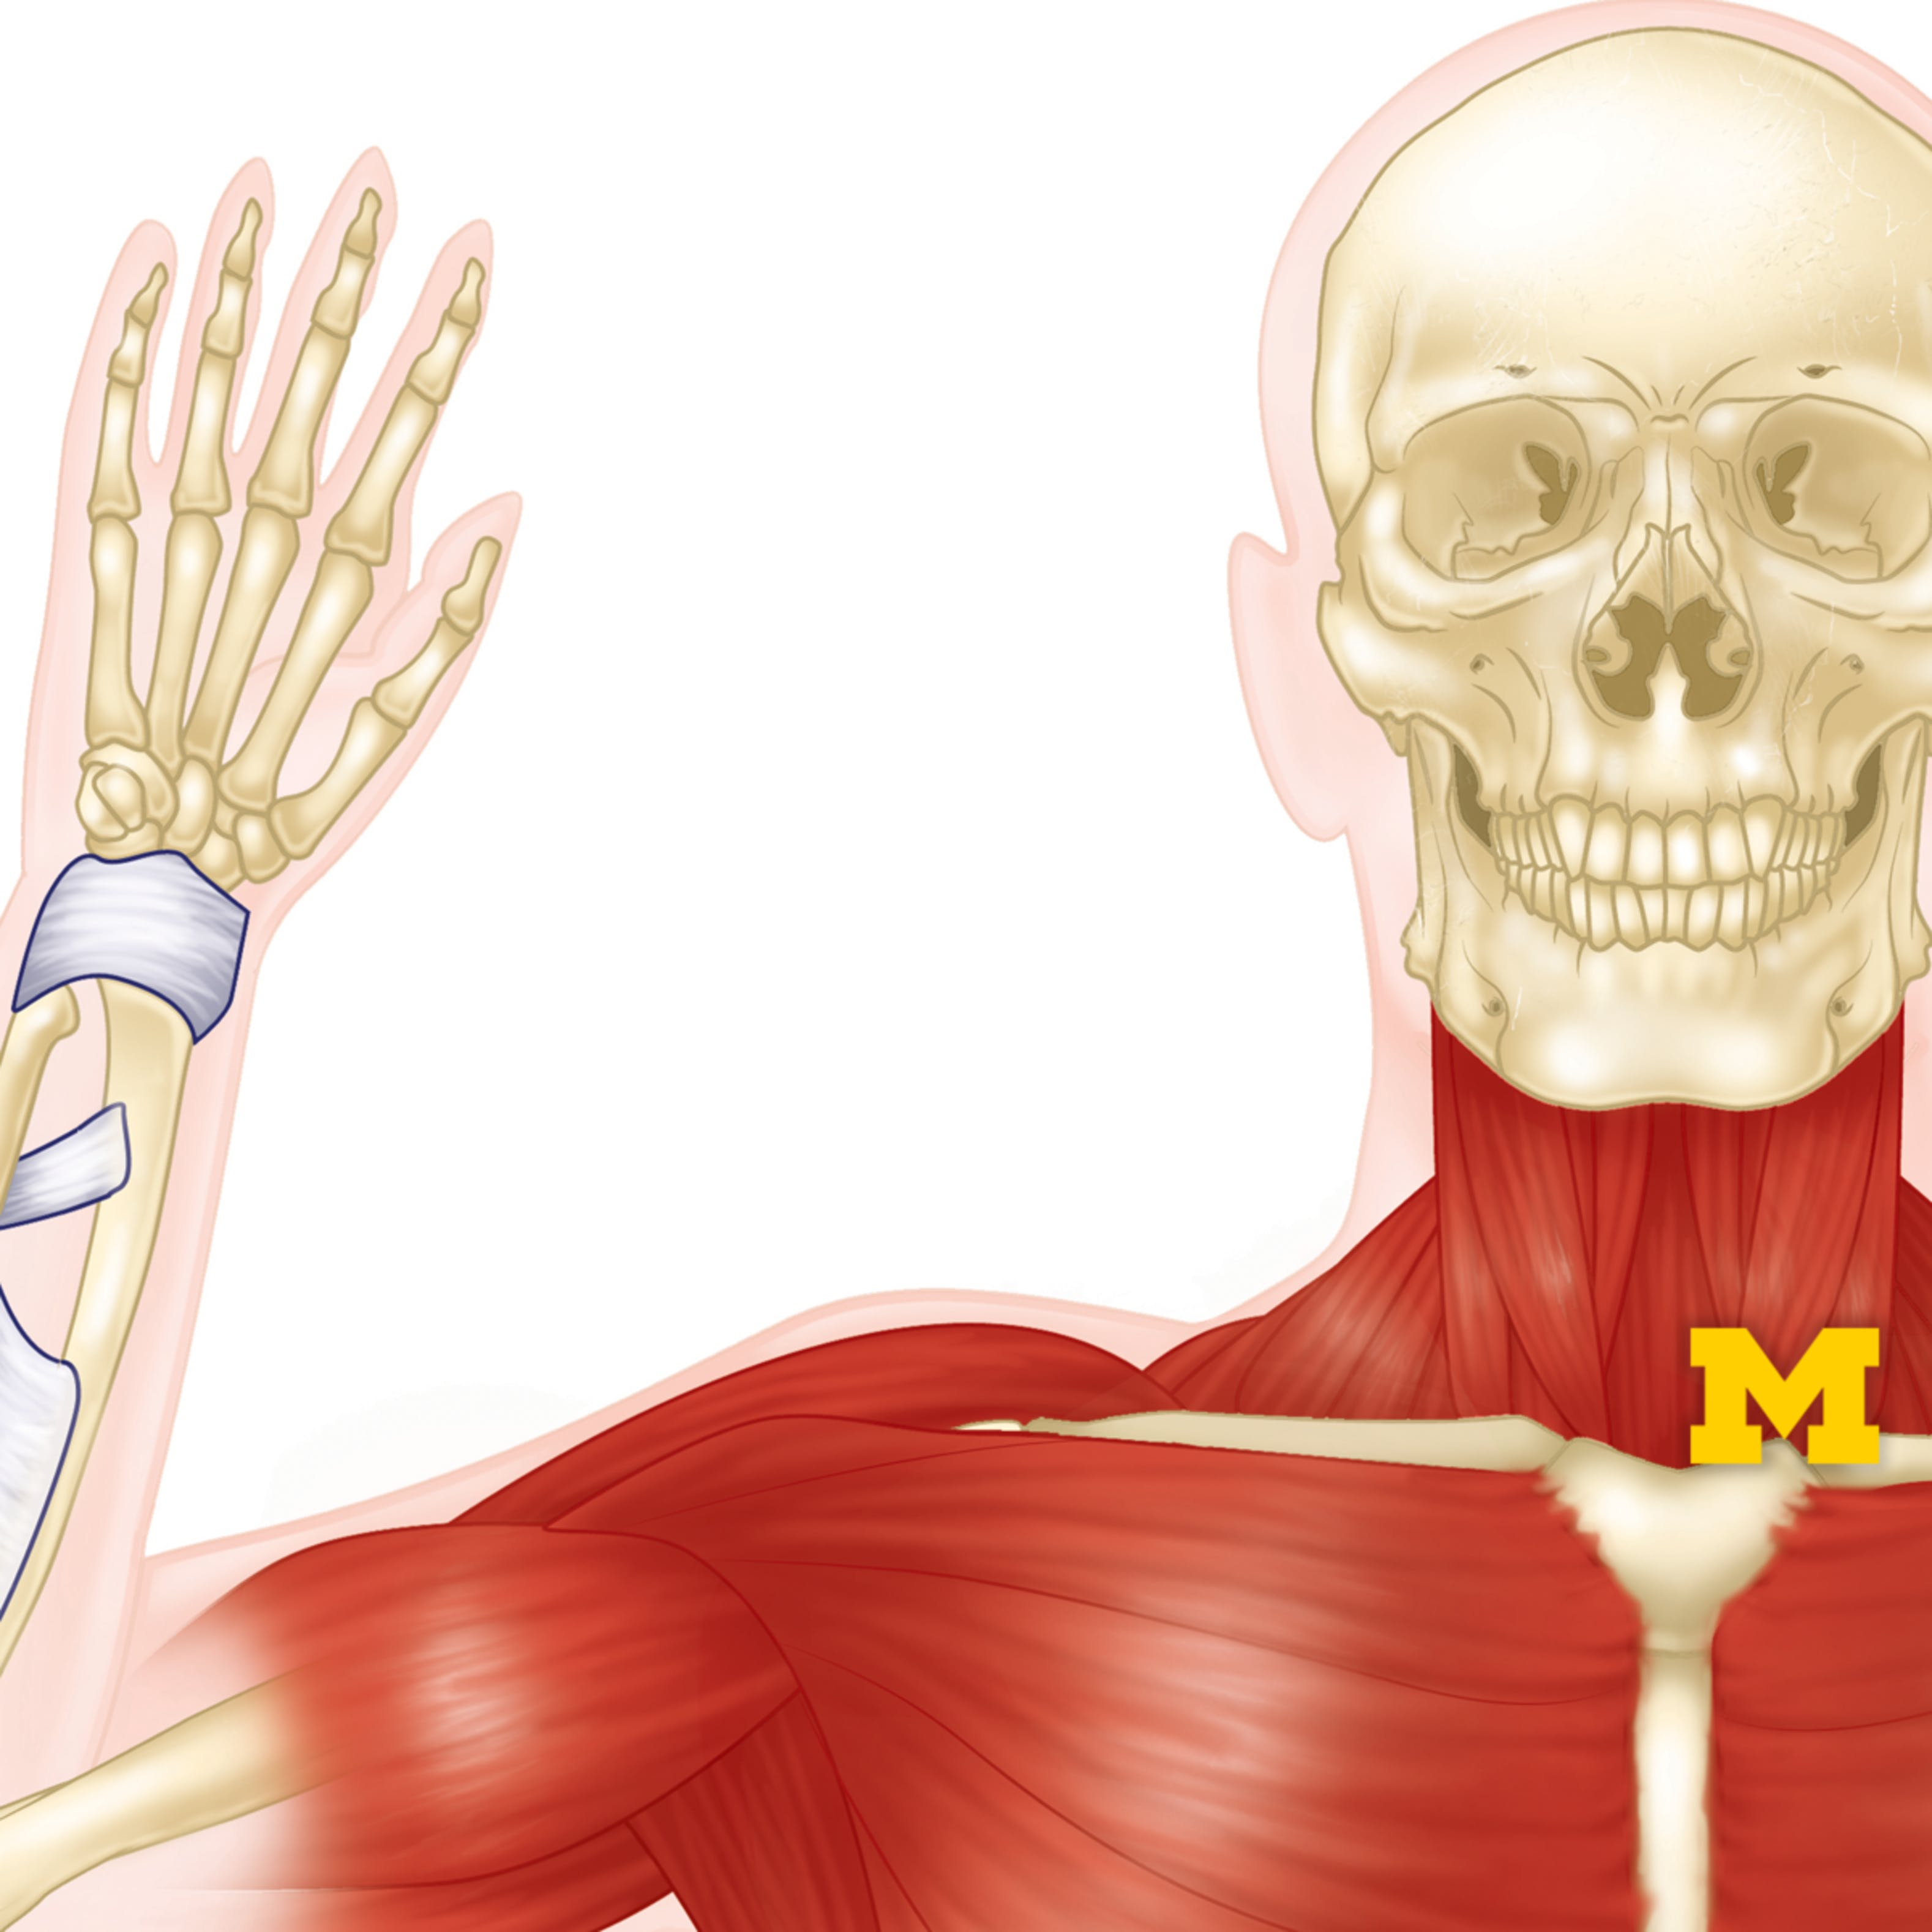 Anatomy Musculoskeletal And Integumentary Systems Coursera